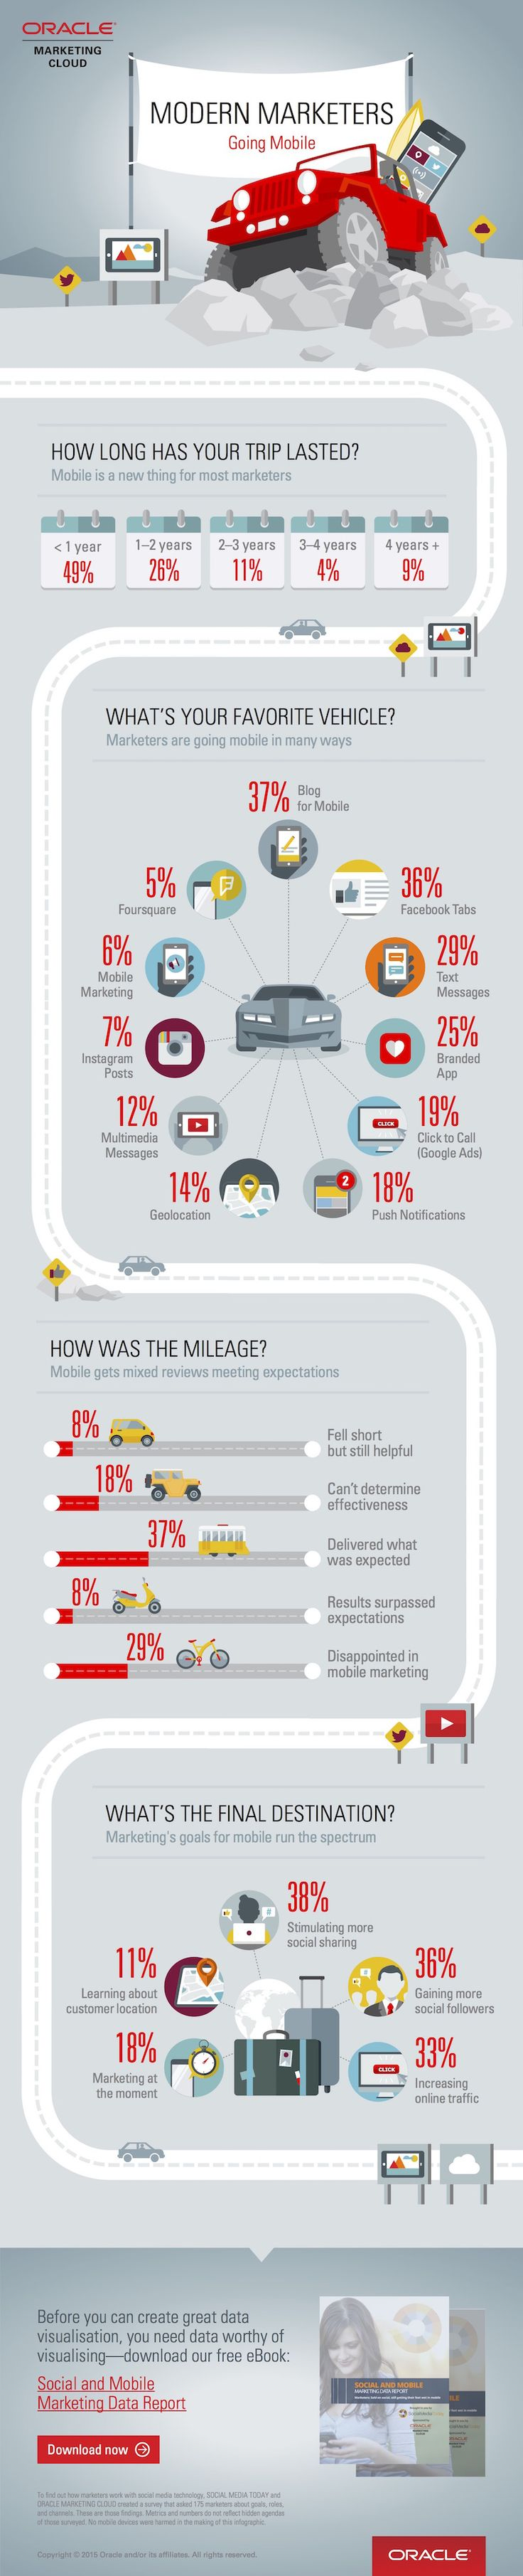 55% of Marketers Disappointed or Unsure of Mobile Marketing Effectiveness | Oracle Marketing Cloud